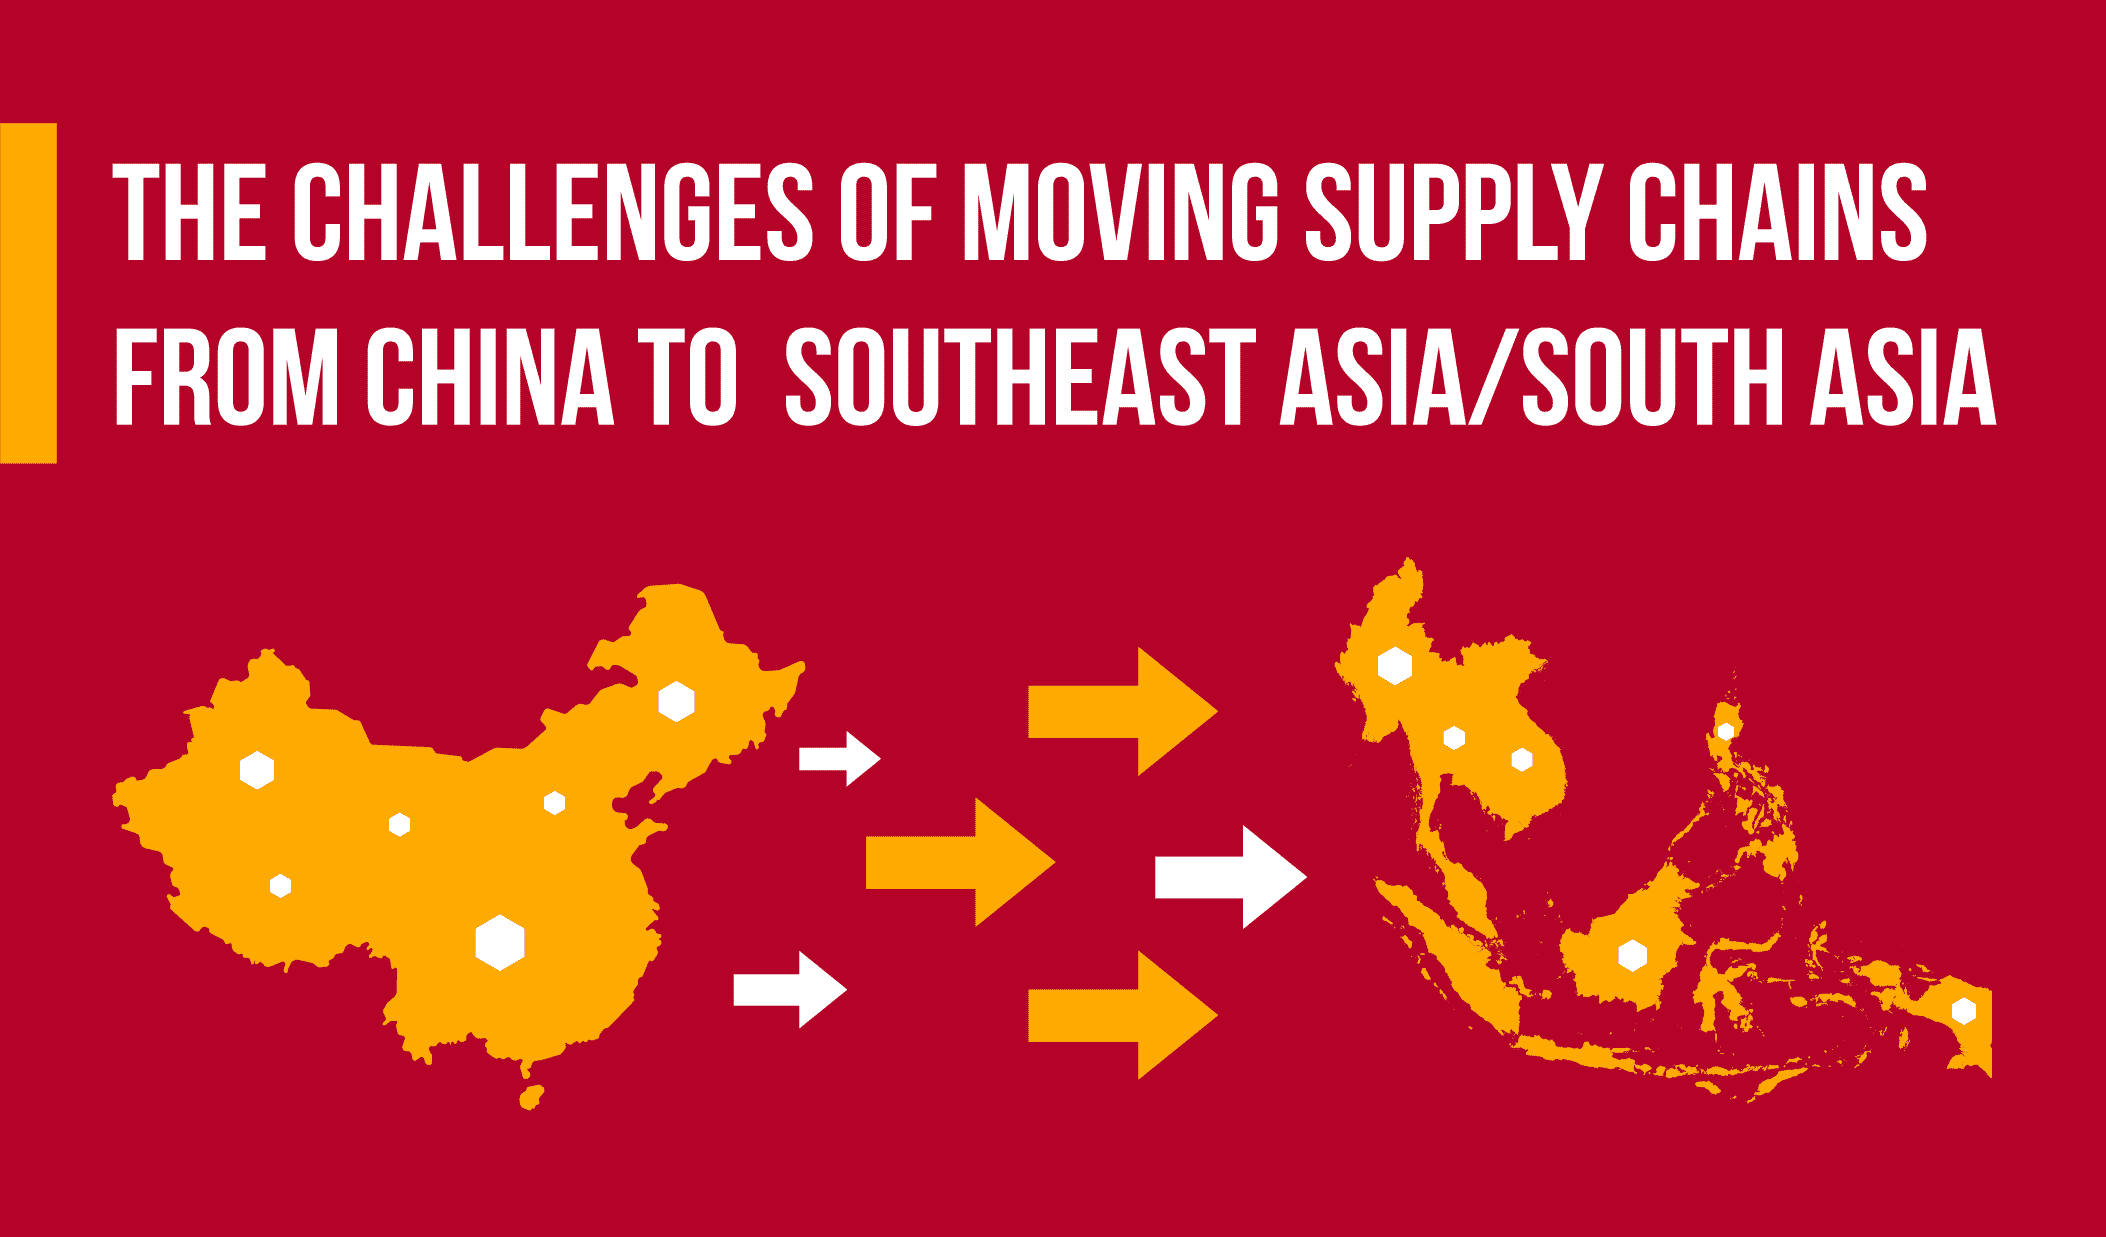 The Challenges of Moving Supply Chains from China to Southeast Asia/South Asia